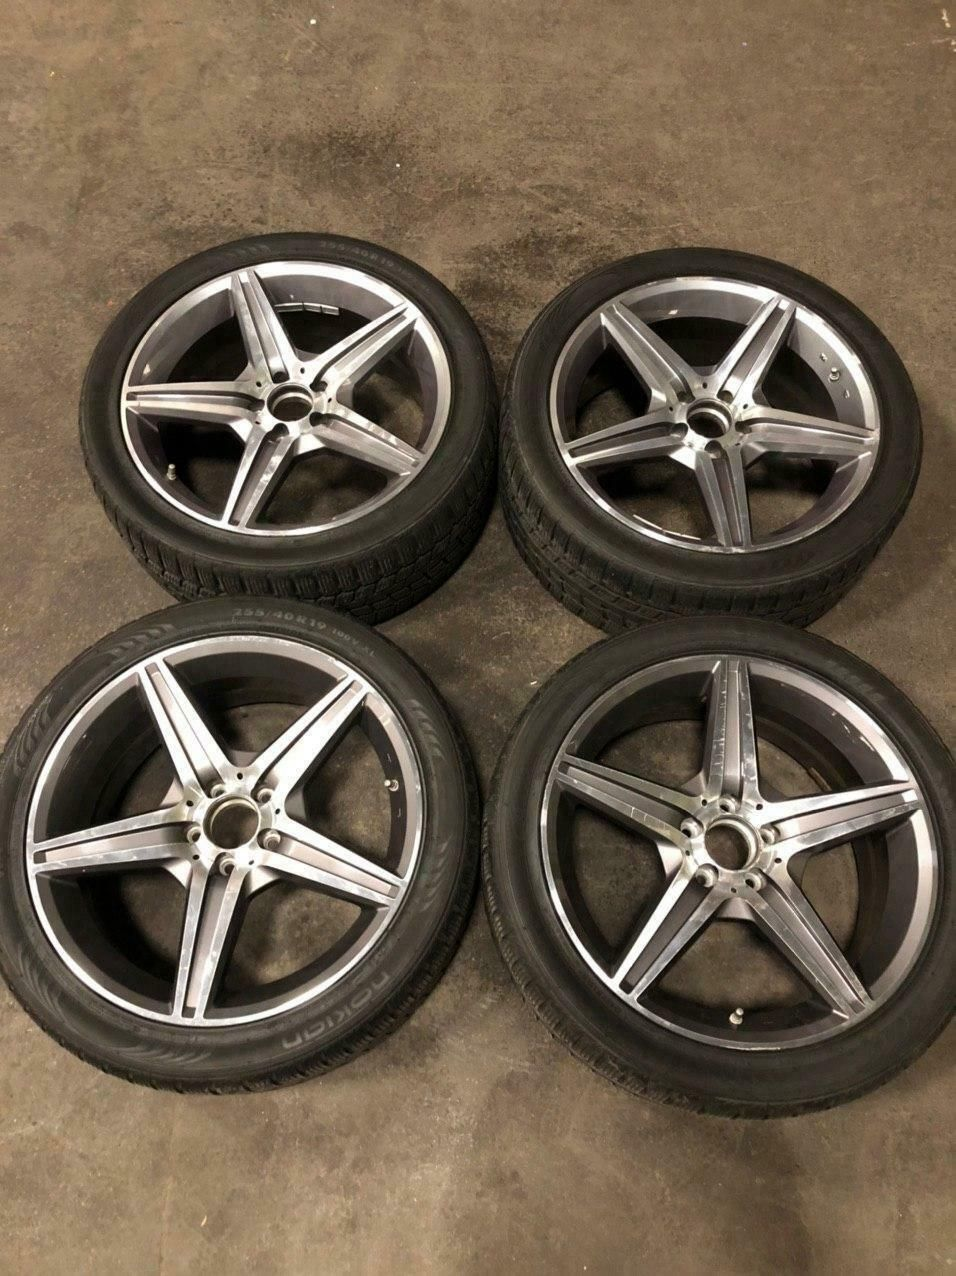 19 Rims And Tires in 2020 Rims and tires, Rims, 19 inch rims